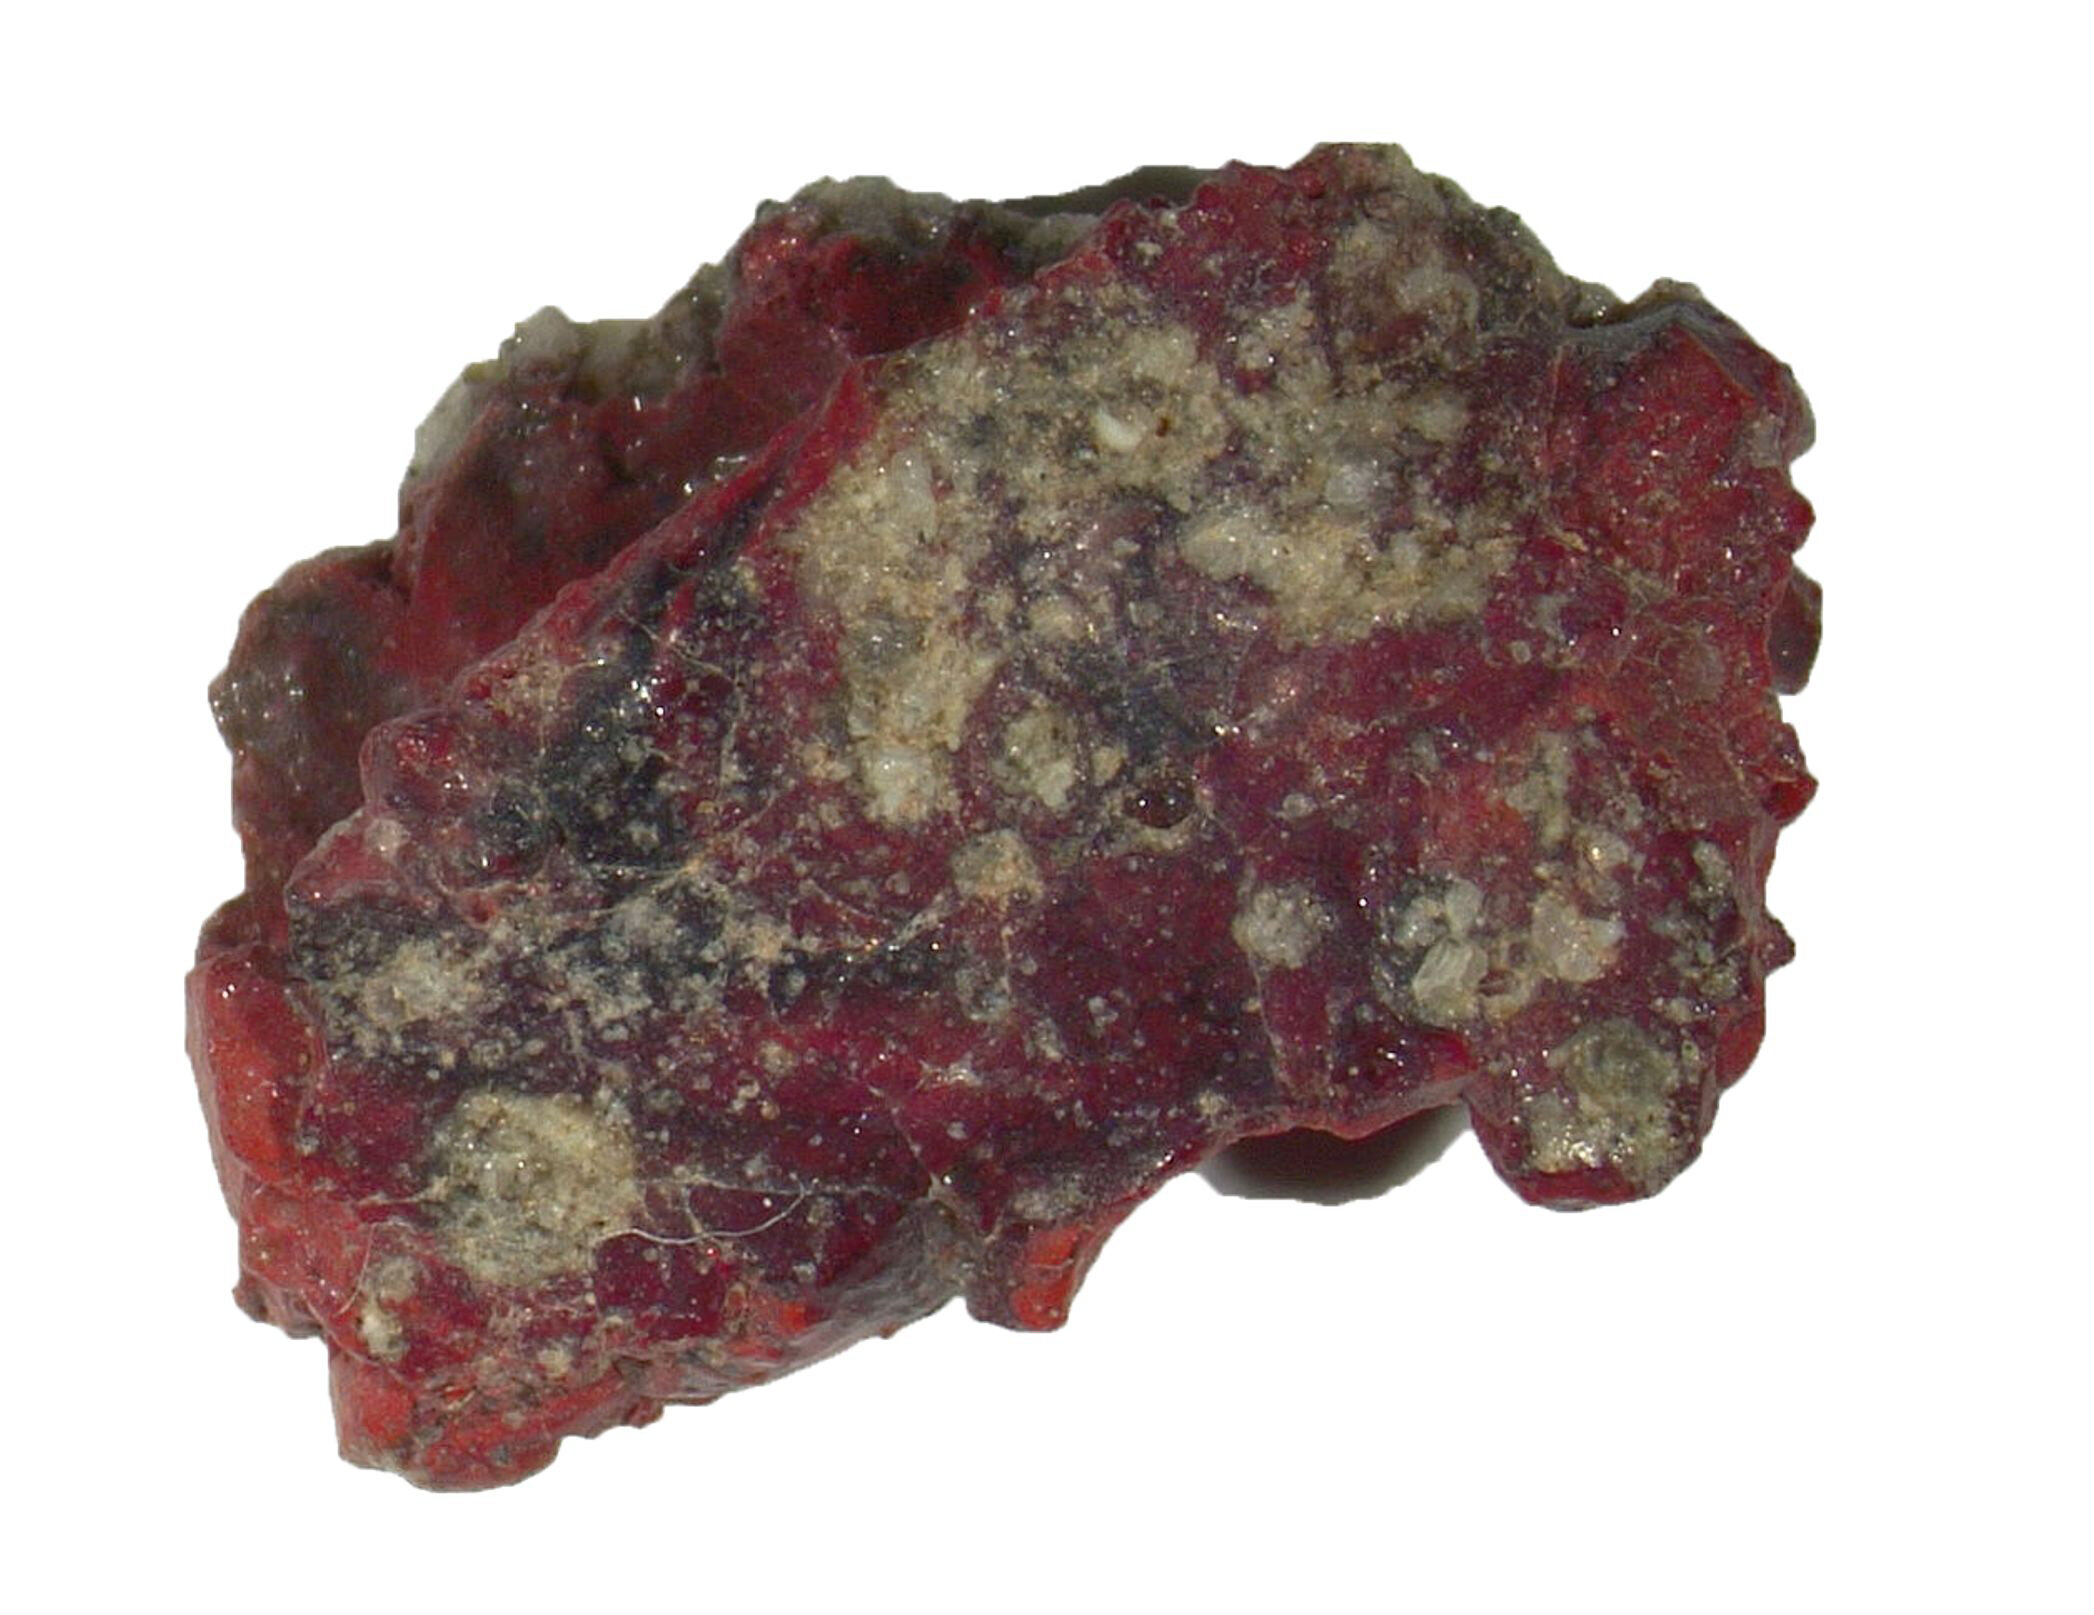 A sample of red trinitite, containing the newly identified quasicrystal